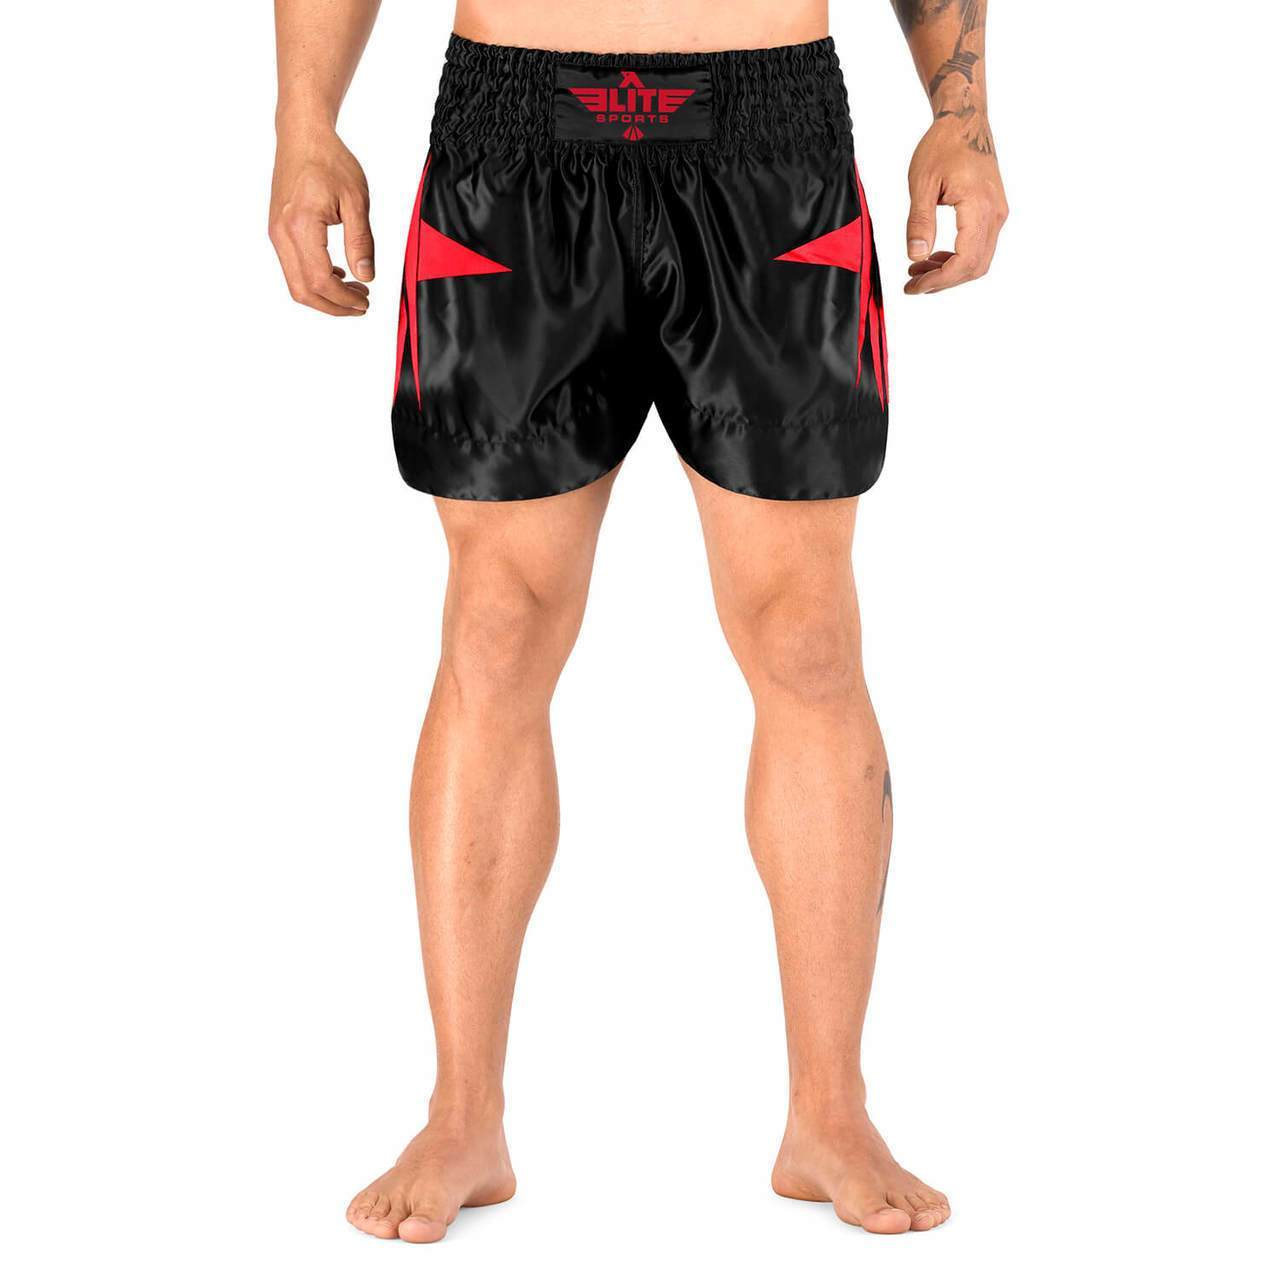 Elite Sports Star Series Sublimation Red Muay Thai Shorts